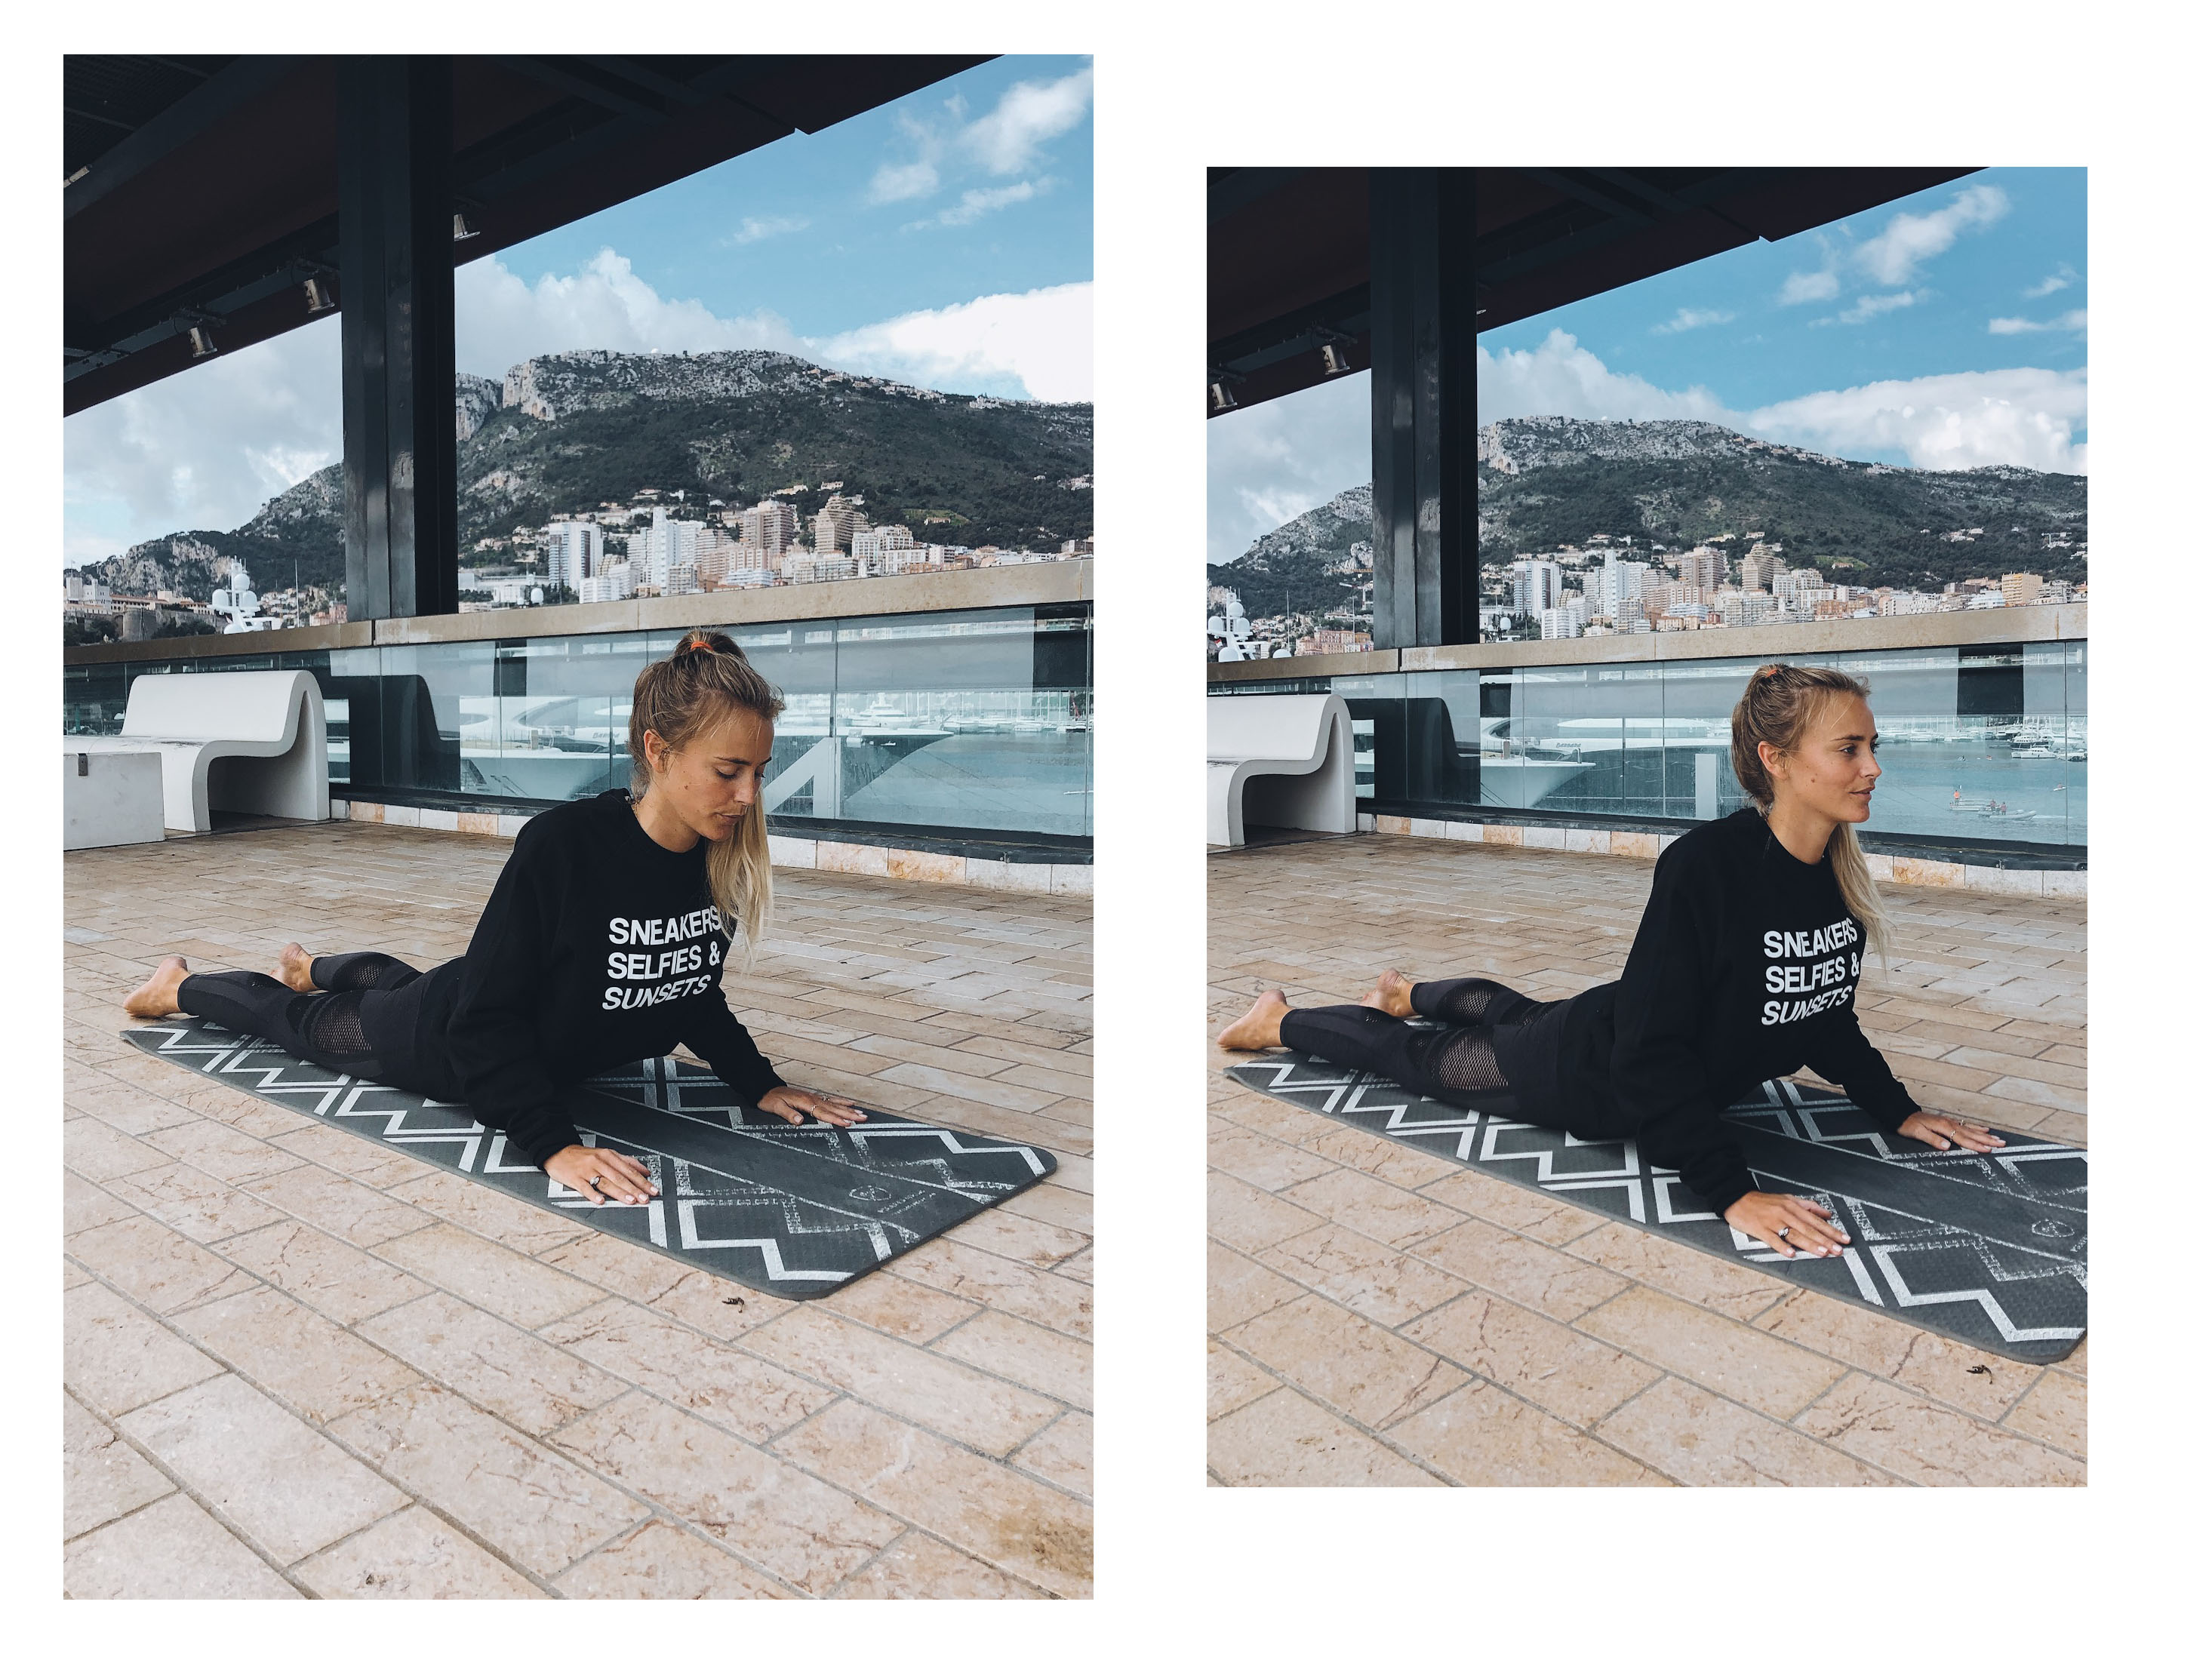 This mornings pilates spot – kick starting the 10 day challenge! 106f58a01b205